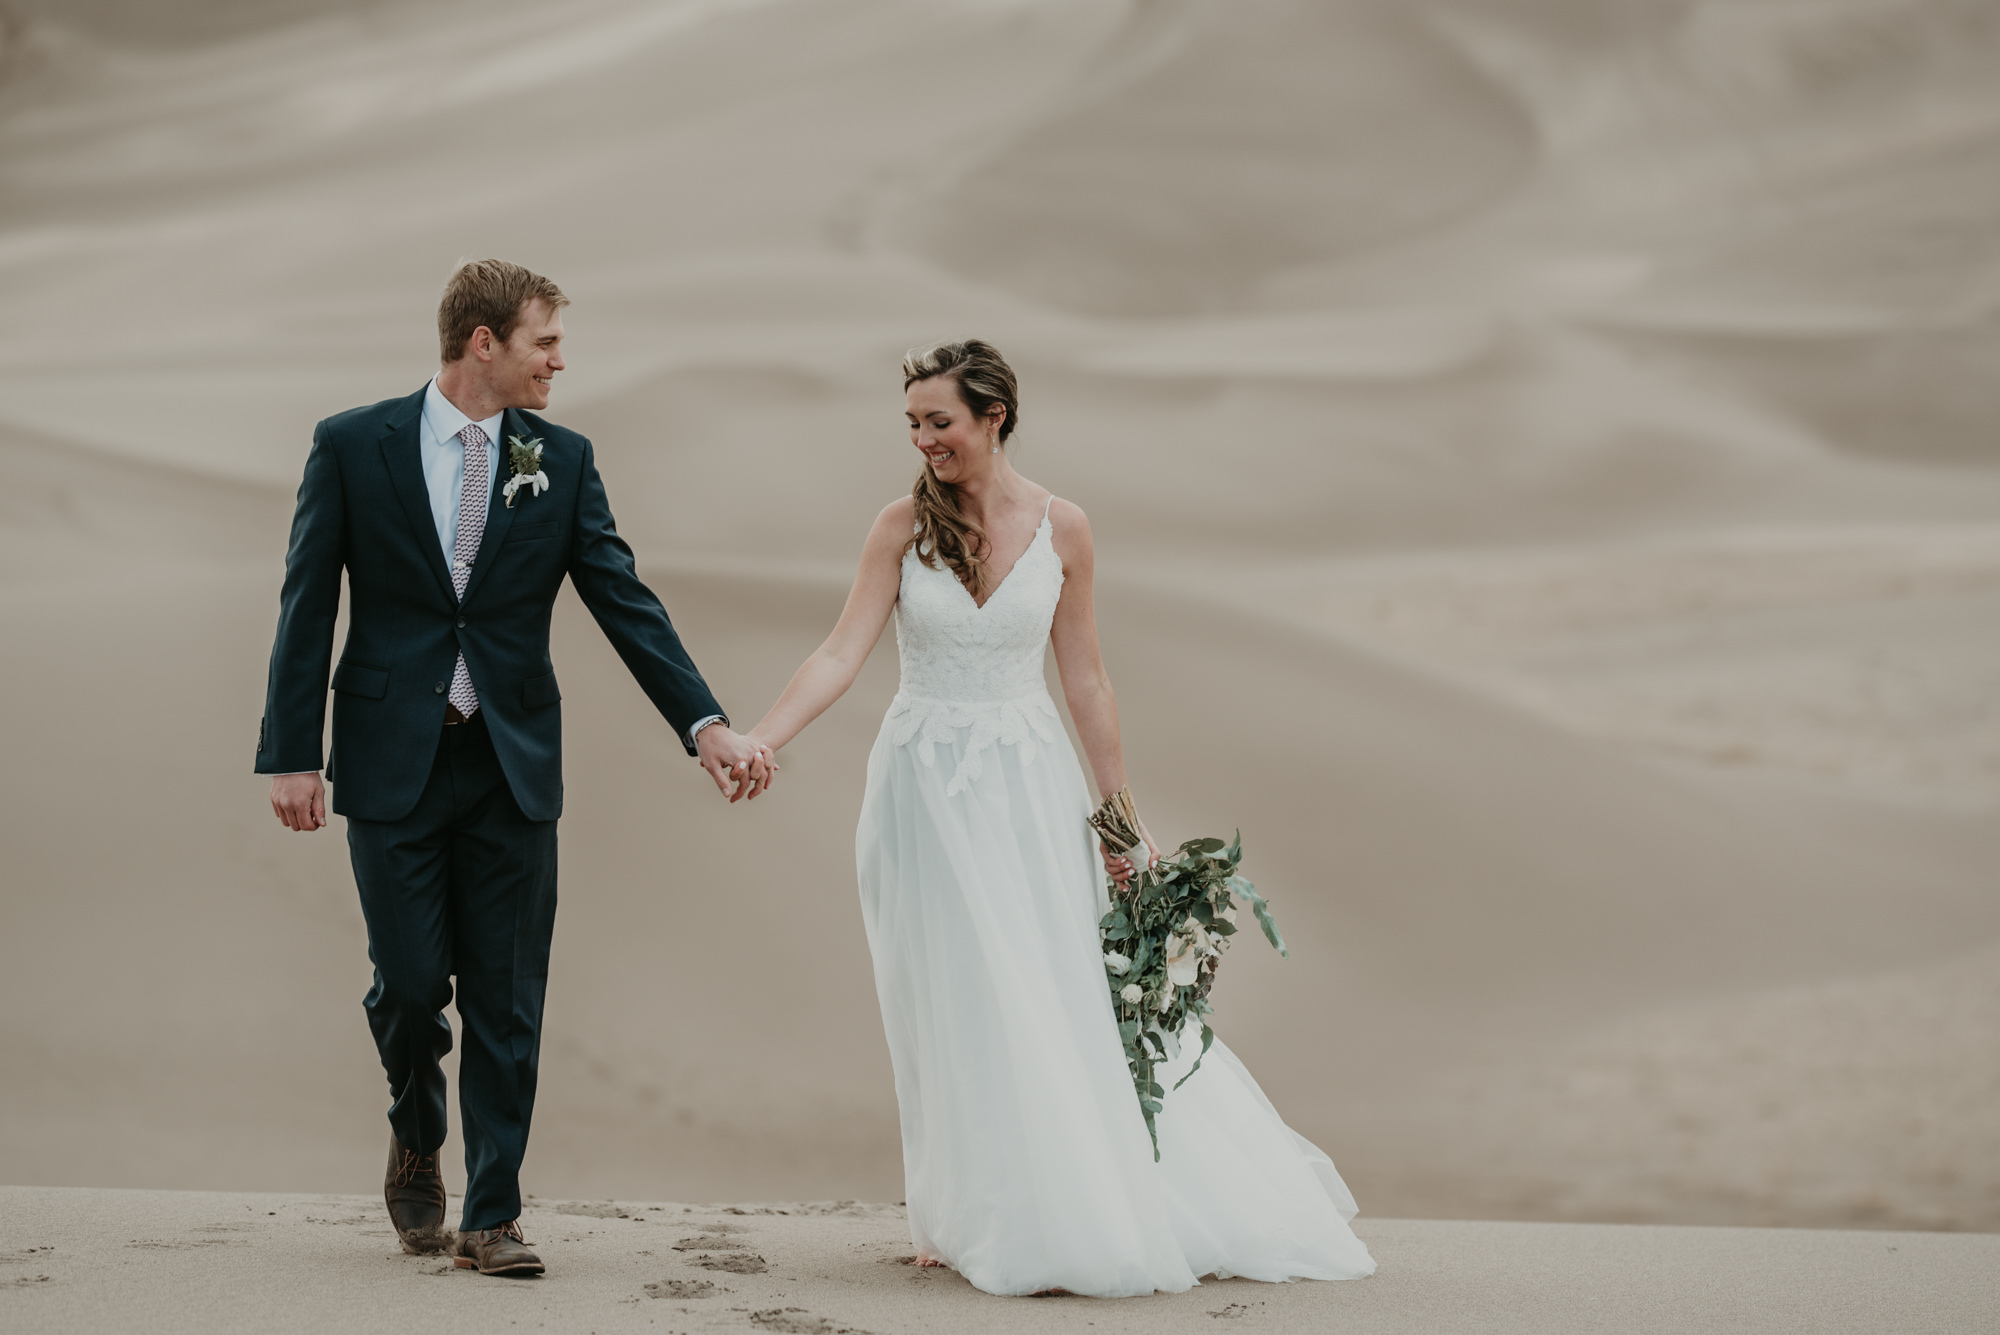 Adventure elopement in Colorado.